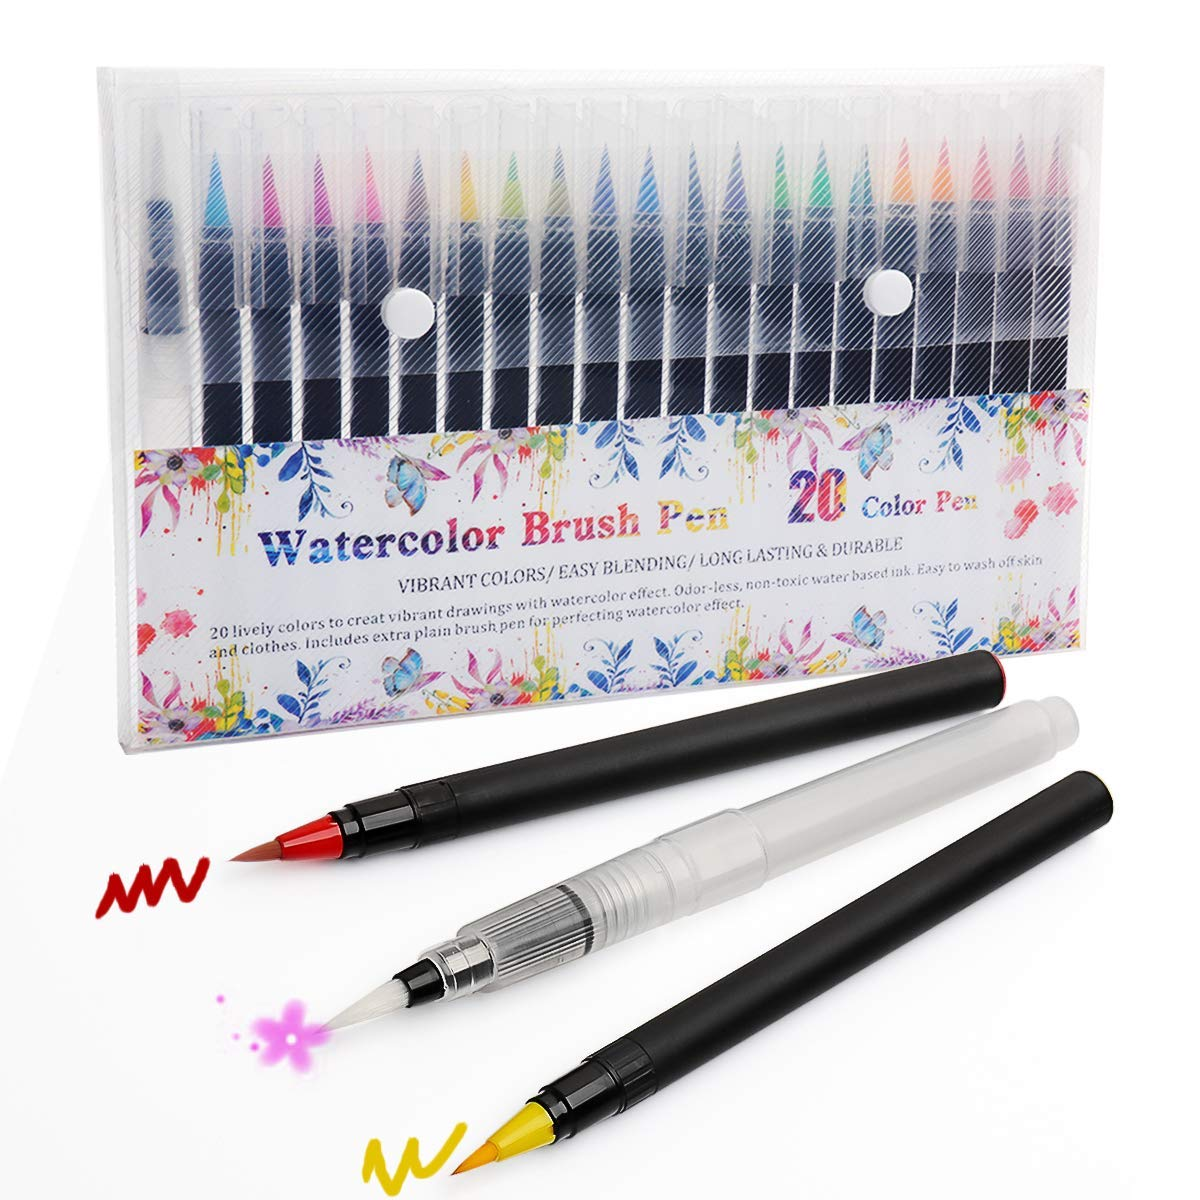 Watercolor Brush Pens - 20 Colors Marker Brushes & 1 Refillable Water Brush for Kids Adult Coloring Books, Manga, Comic, Calligraphy - Soft Flexible Tip Markers